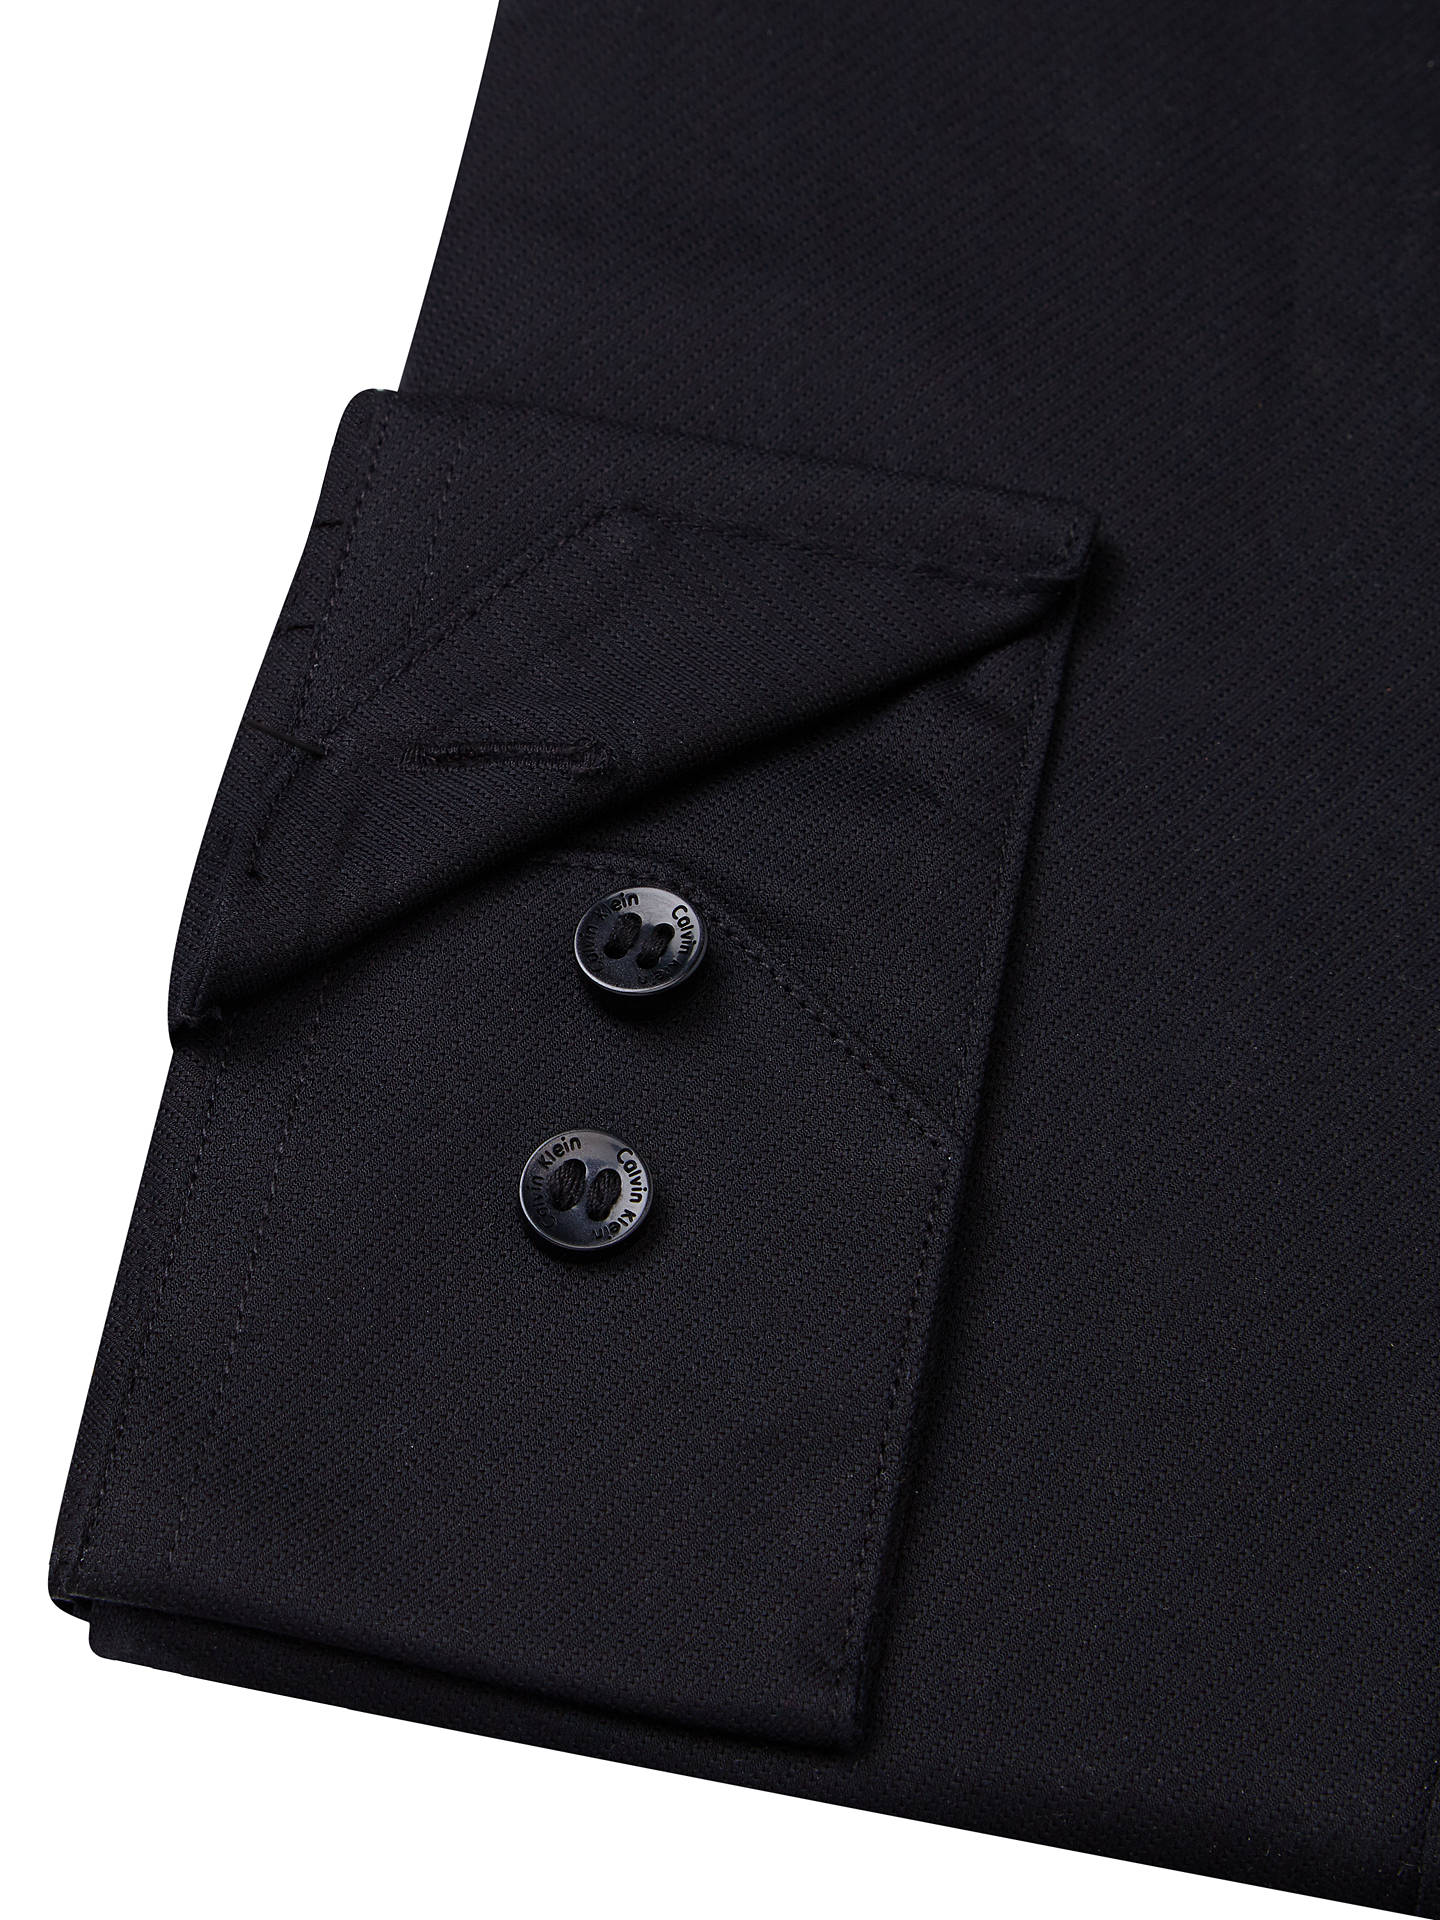 BuyCalvin Klein Cannes Poplin Fitted Shirt, Black, 15 Online at johnlewis.com